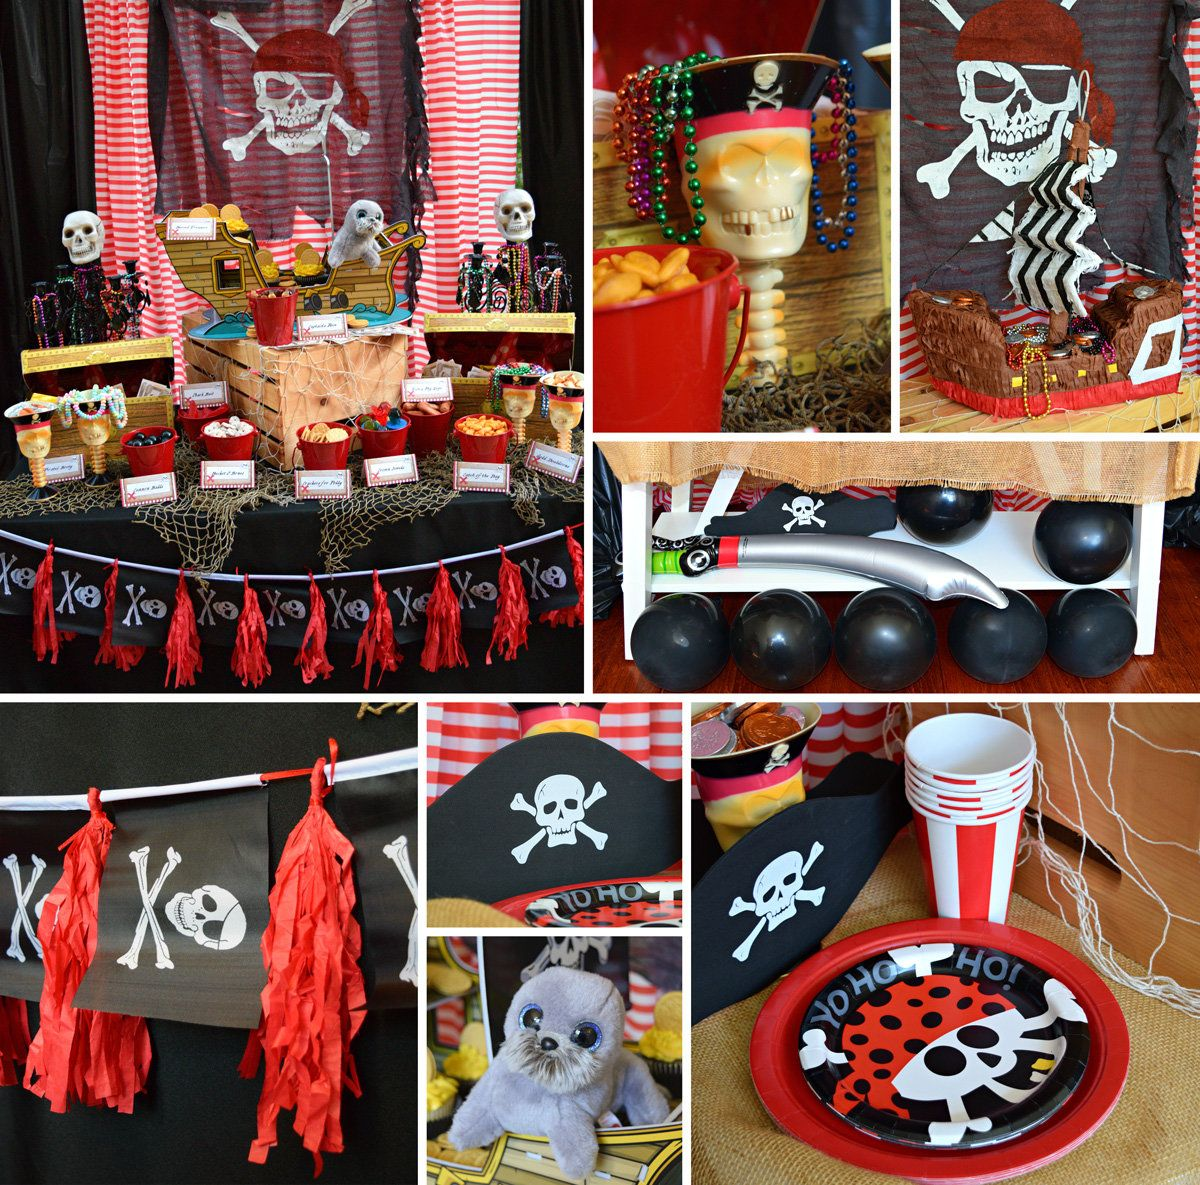 Pirate Party Decorations  Pirate party decorations, Pirate